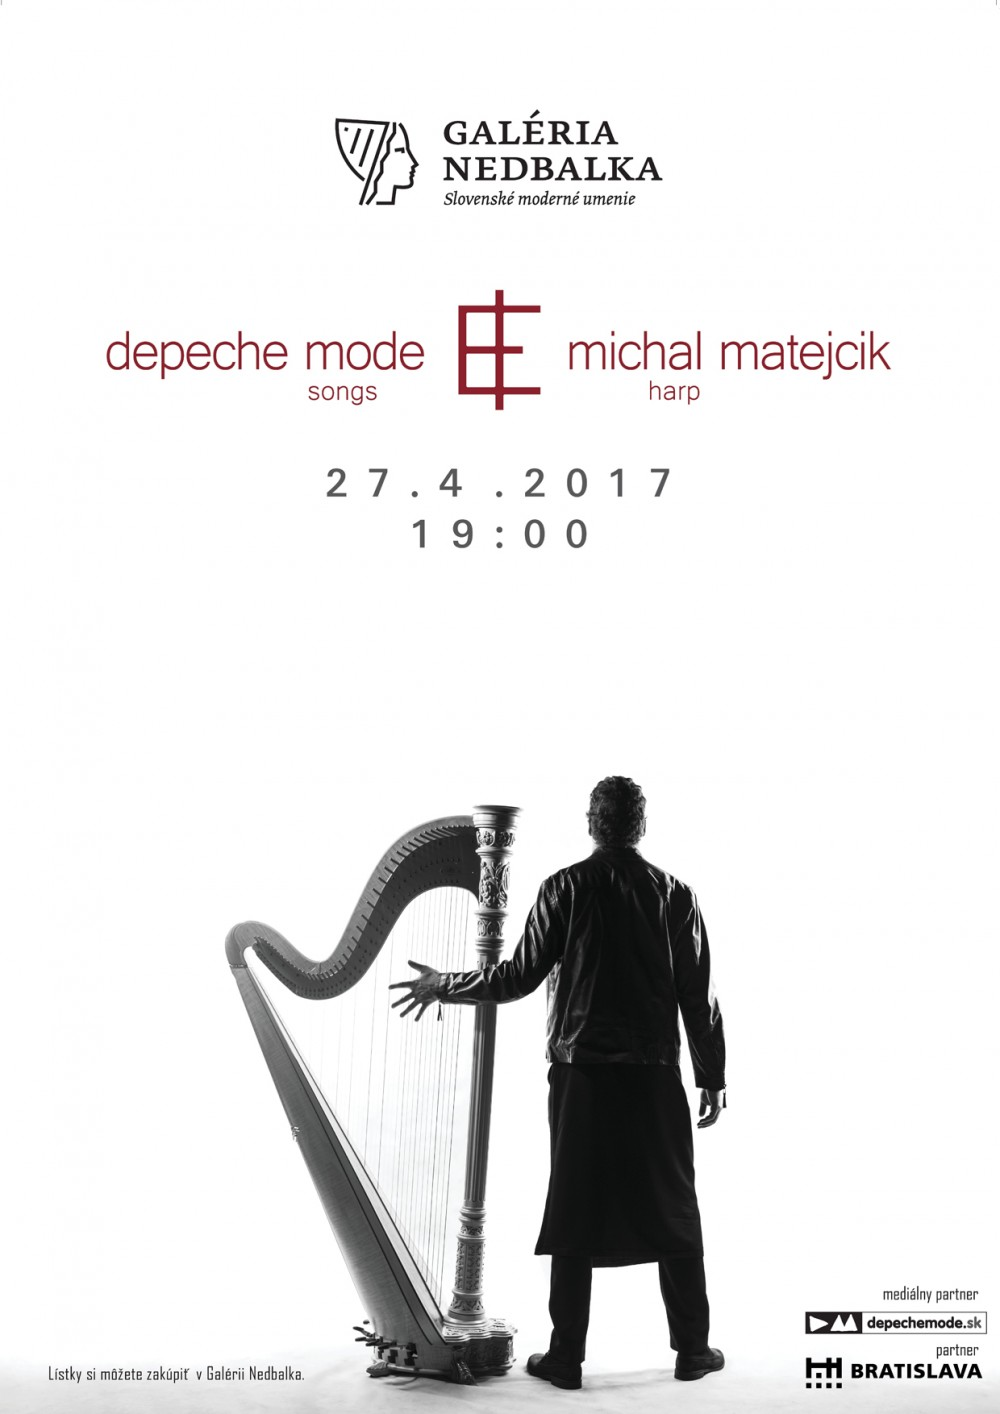 Plagát: Depeche Mode Songs - Michal Matejcik Harp